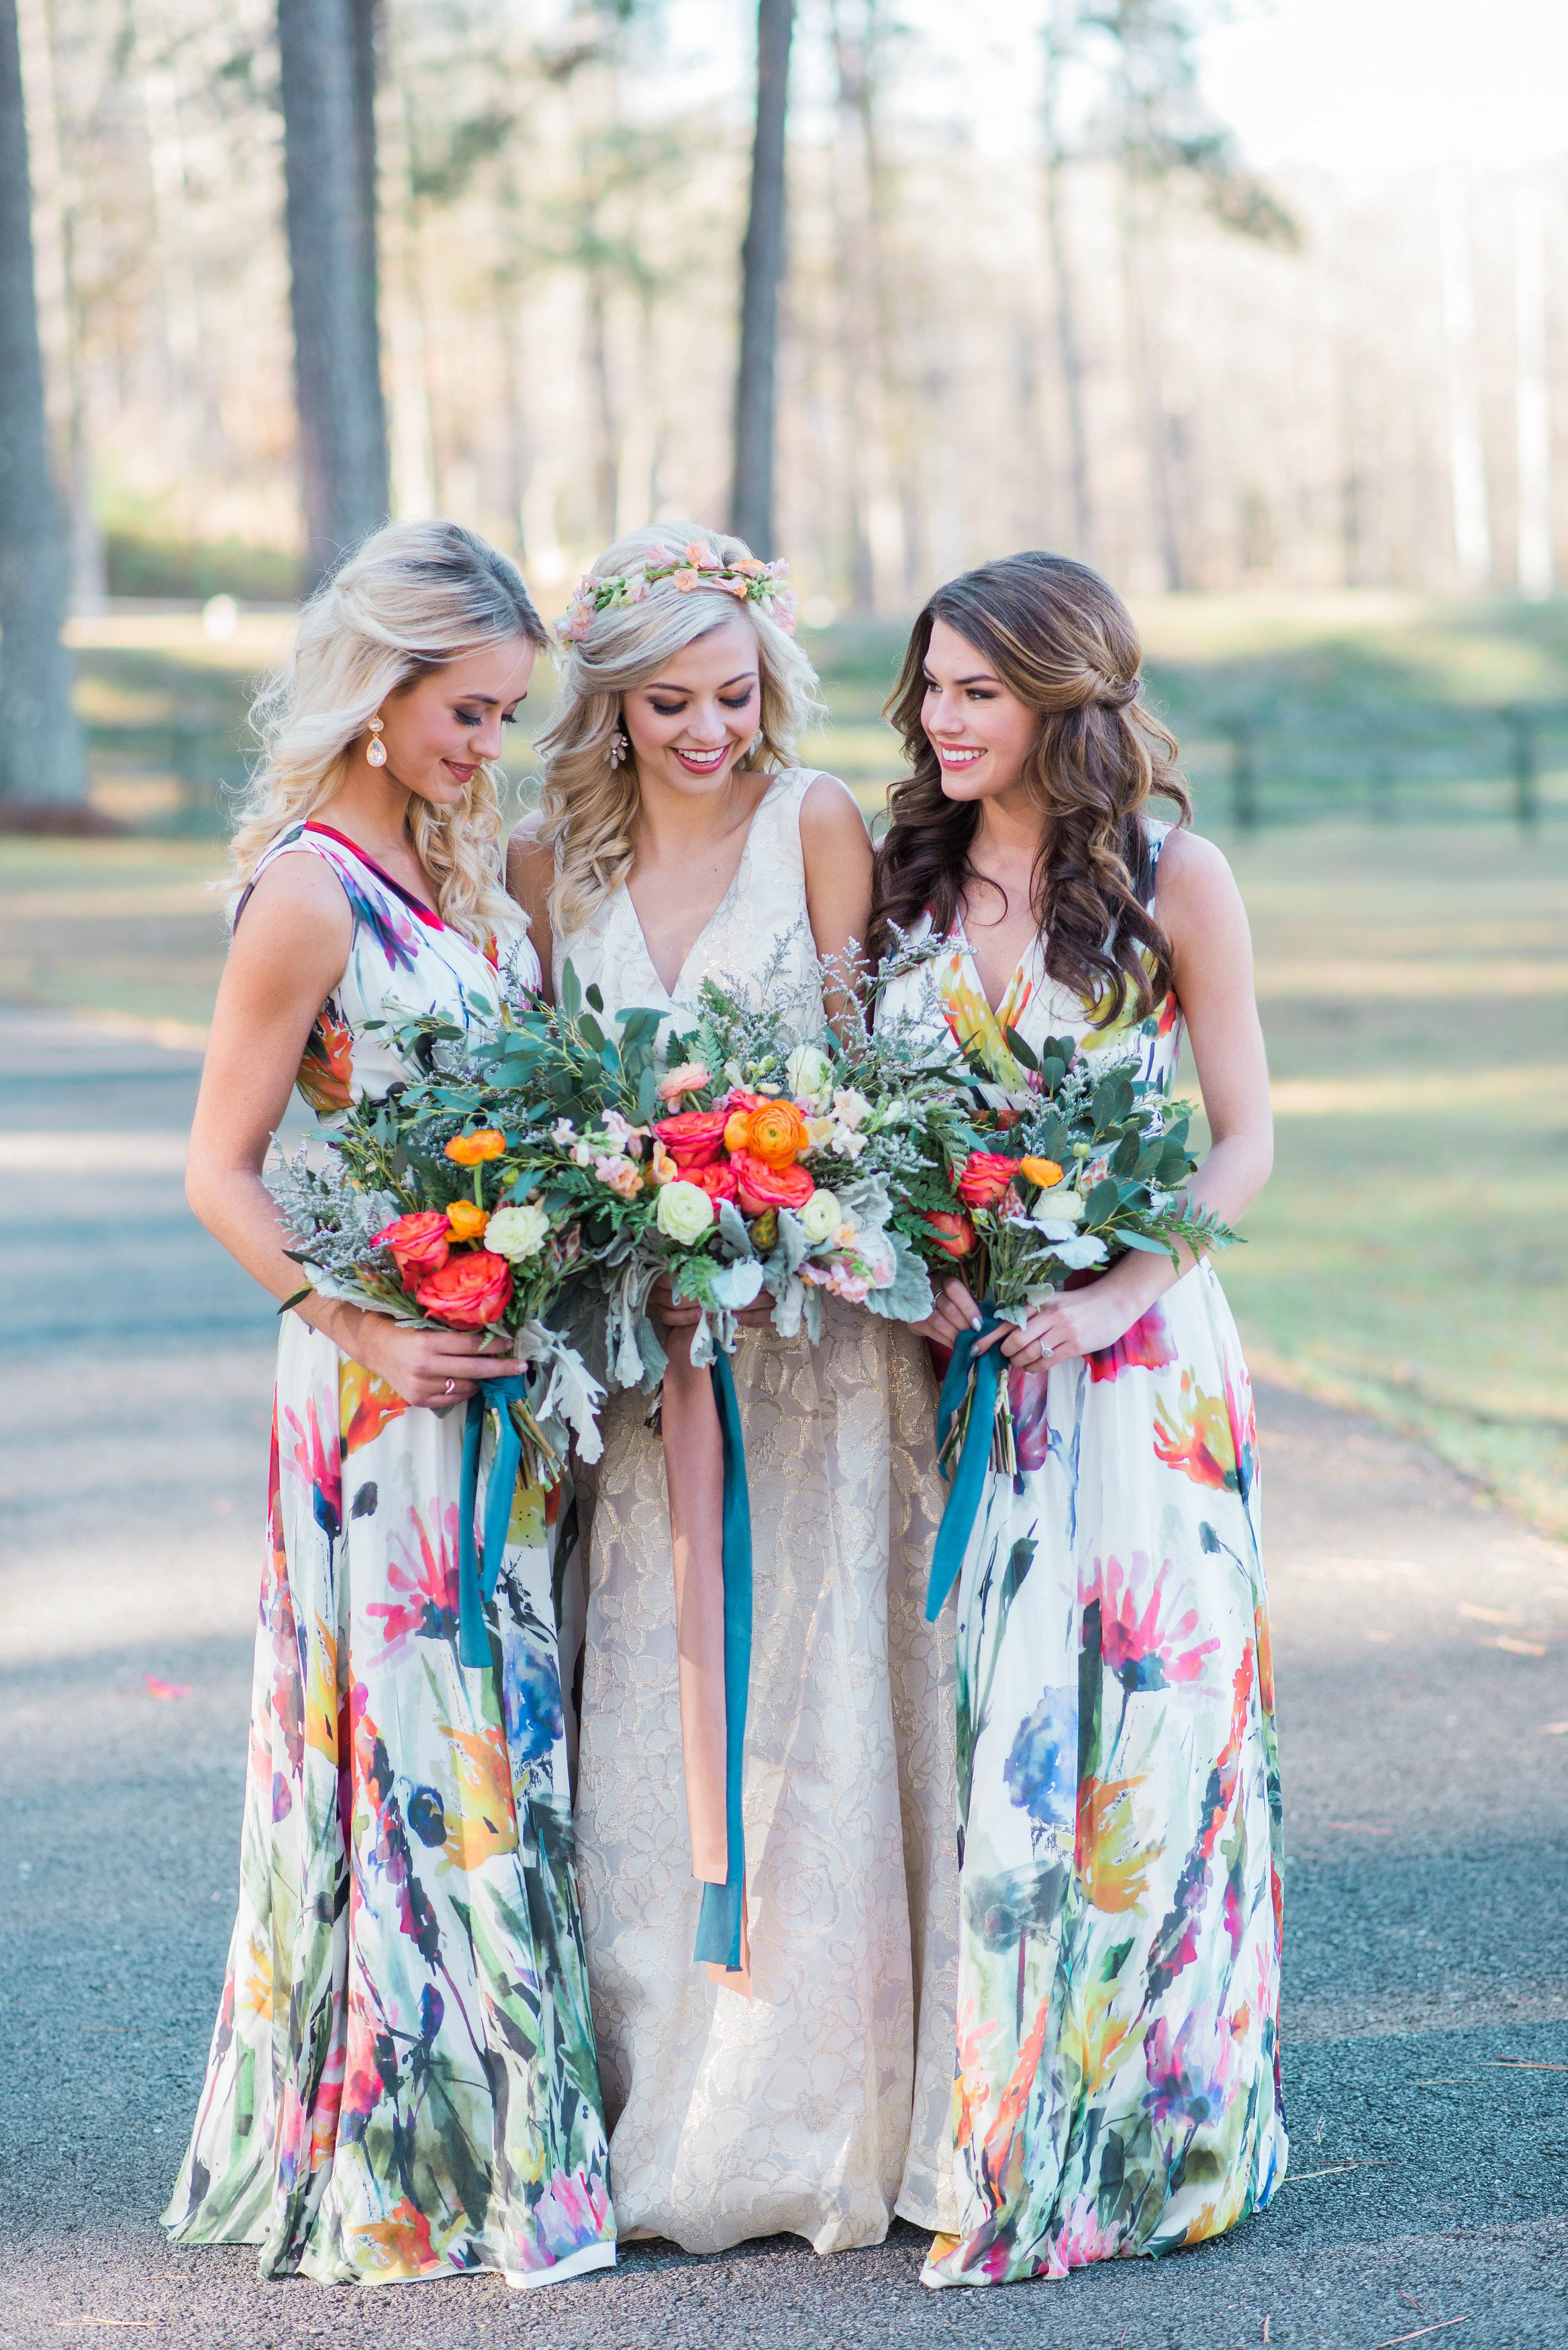 97644cfd85 Vibrant bouquets and long floral print dresses. Find this Pin and more on  Bridesmaids ...